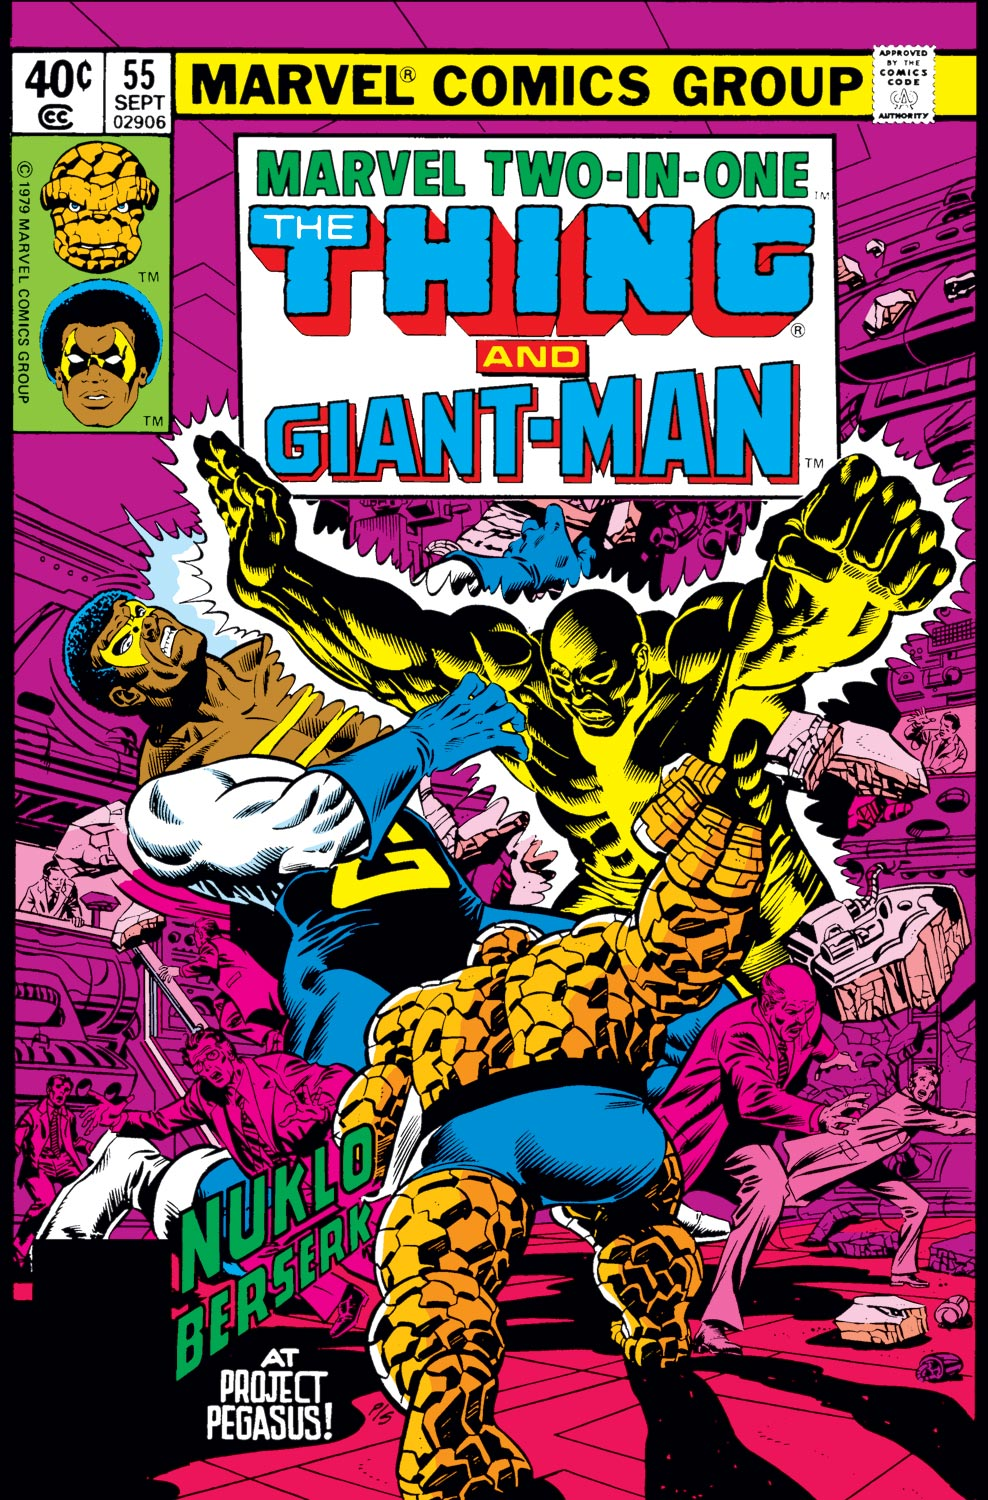 Marvel Two-in-One (1974) #55